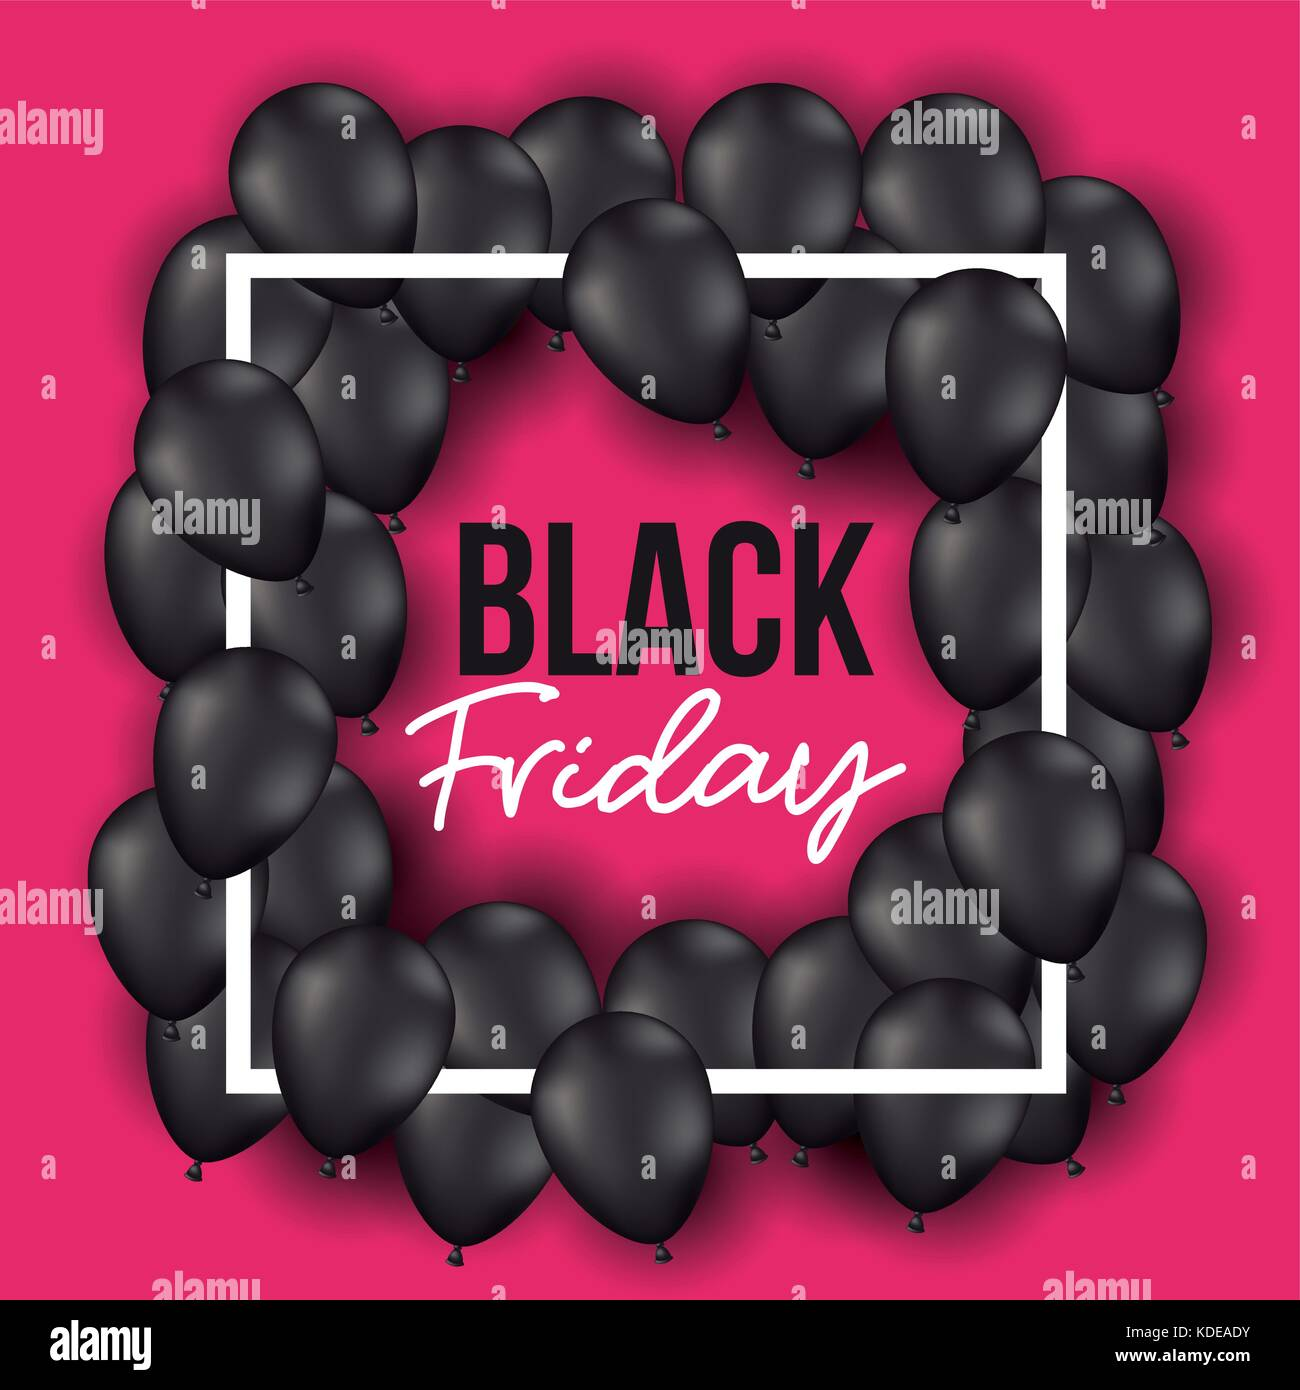 black friday poster with frame with balloons and magenta background - Stock Image